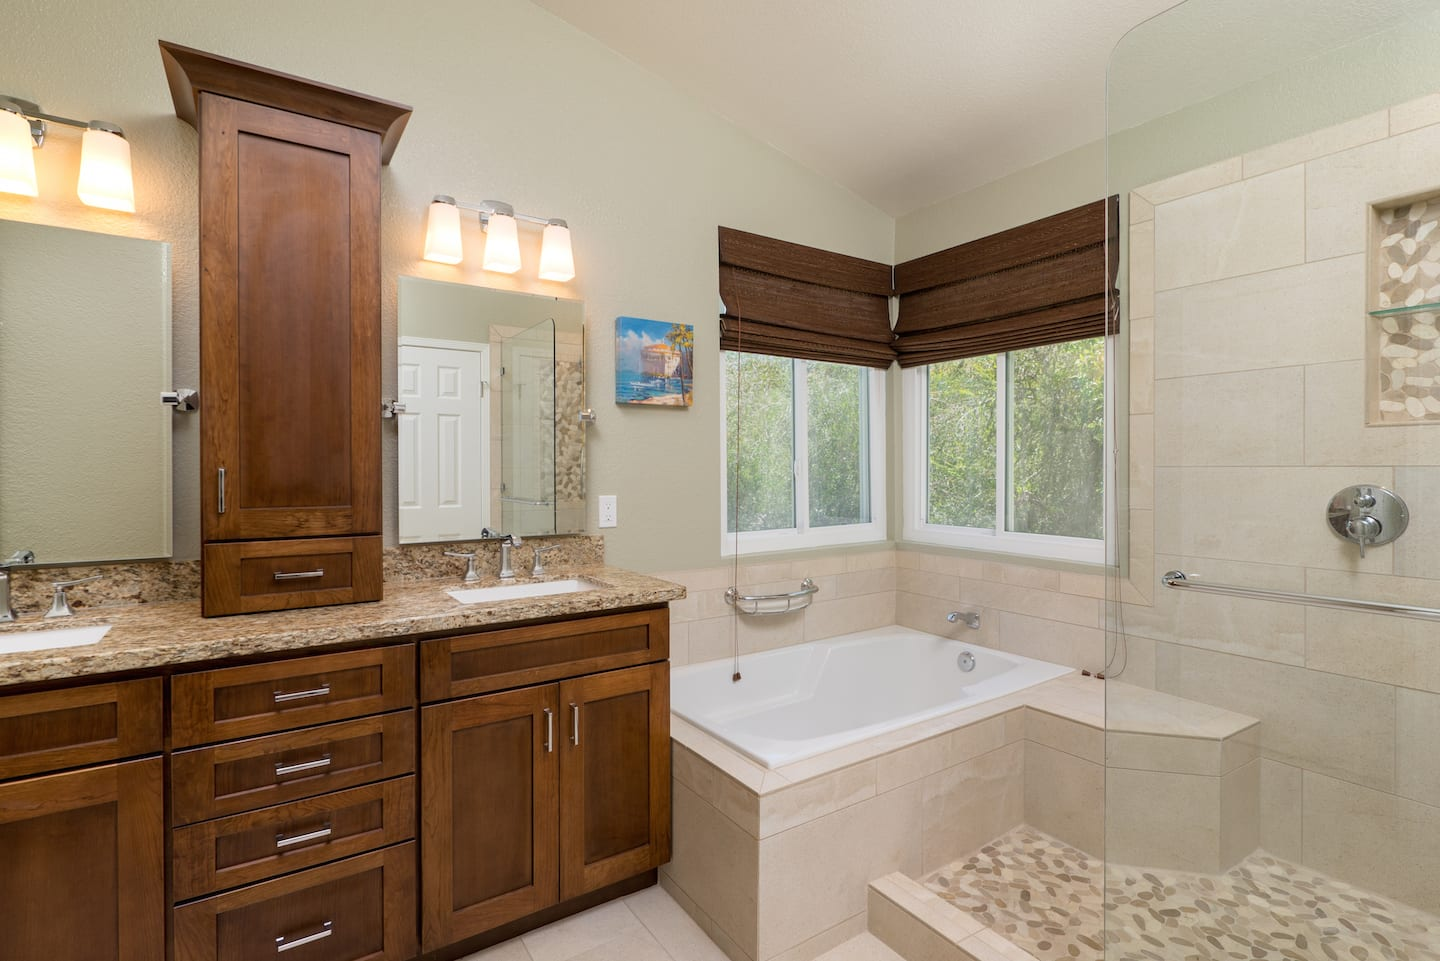 Remodeled bathroom with cabinets tile and tub